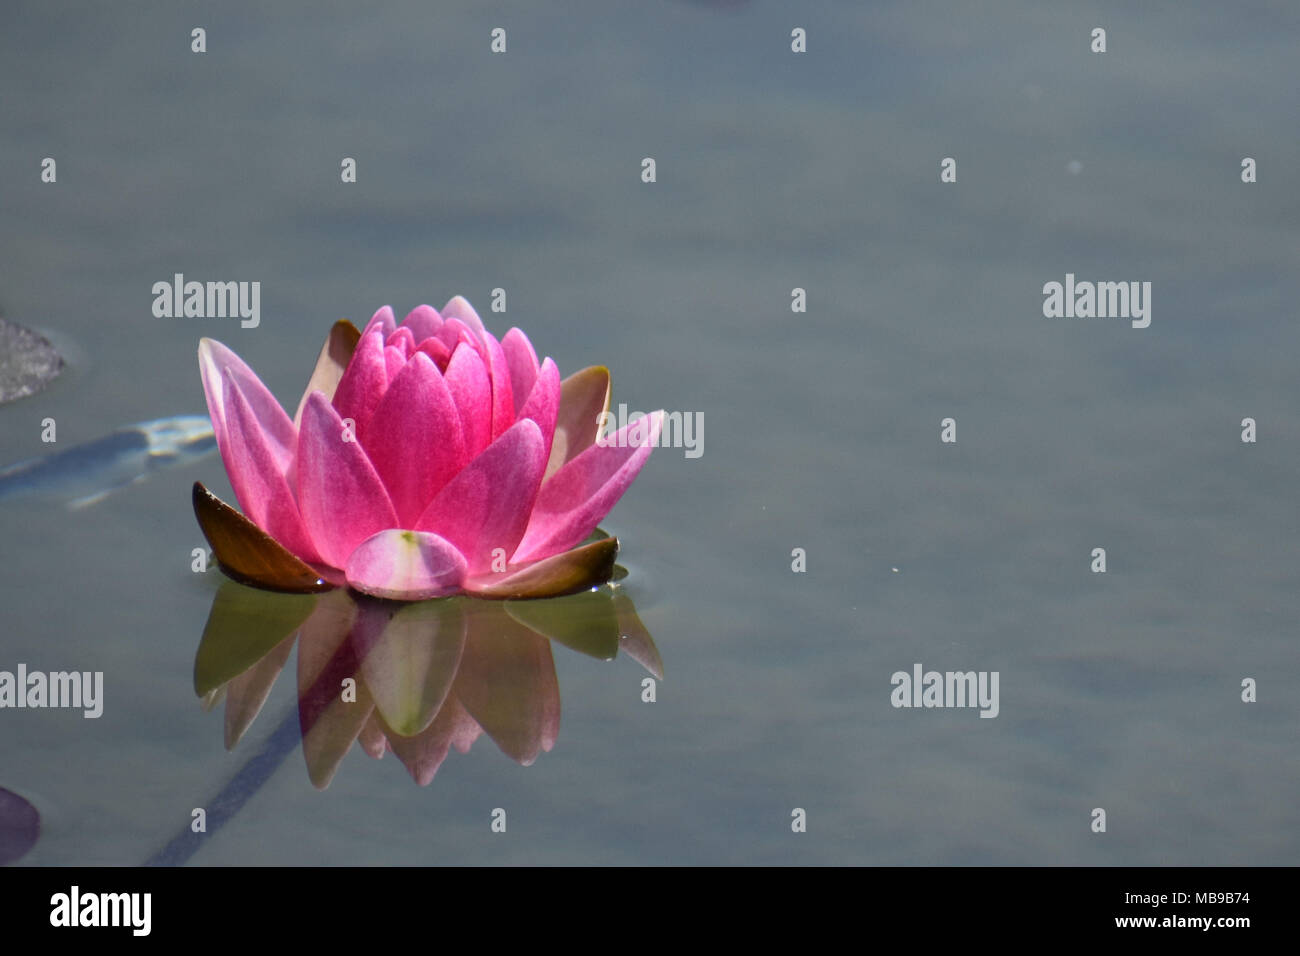 Floating Hot Pink Lily Stock Photos Floating Hot Pink Lily Stock